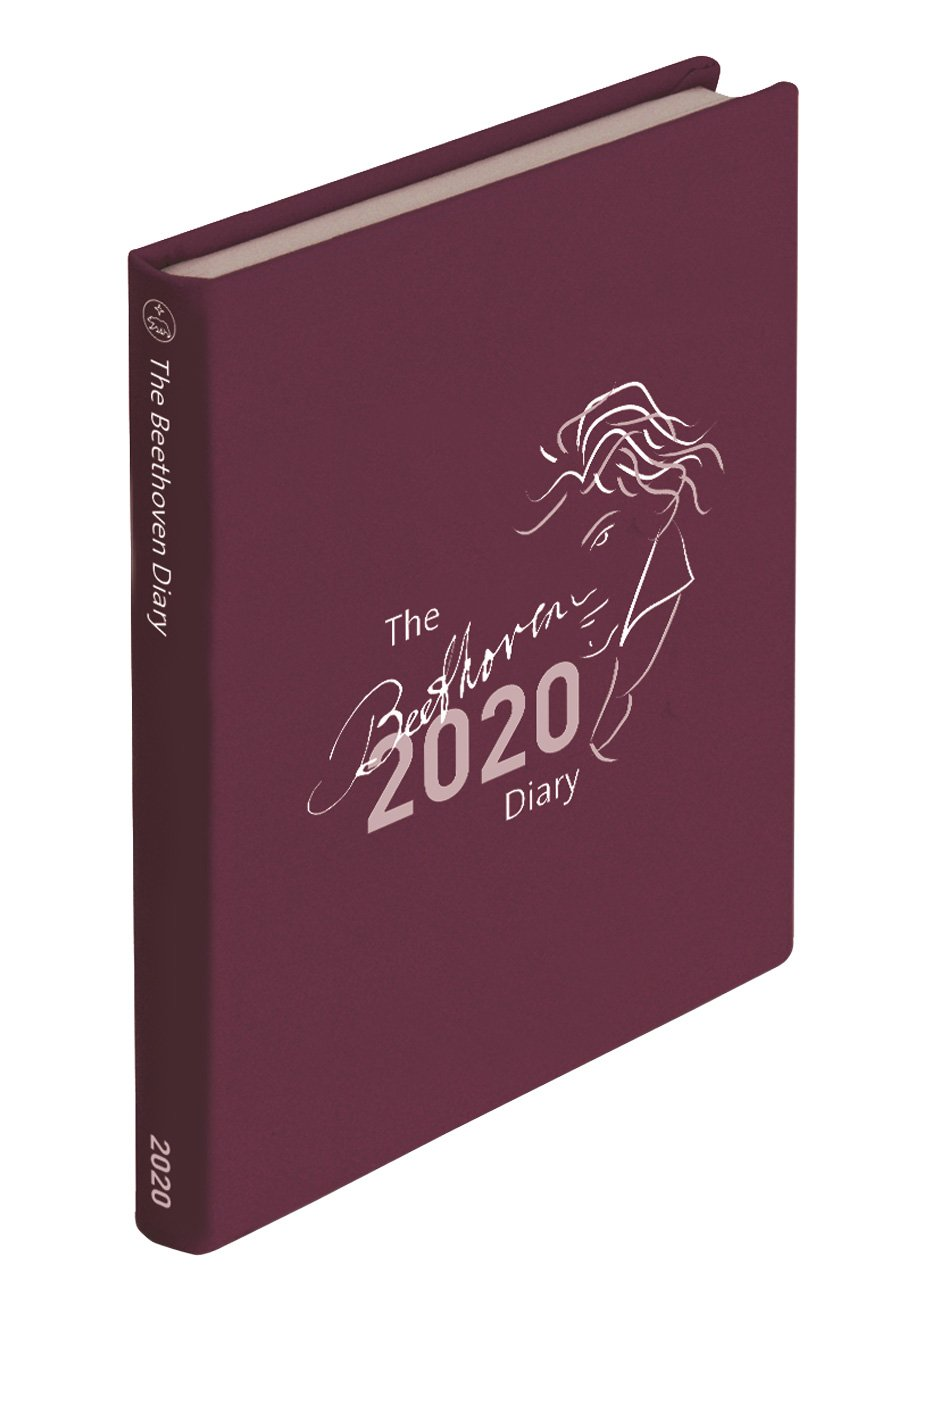 The Beethoven 2020 Diary: 250th Anniversary